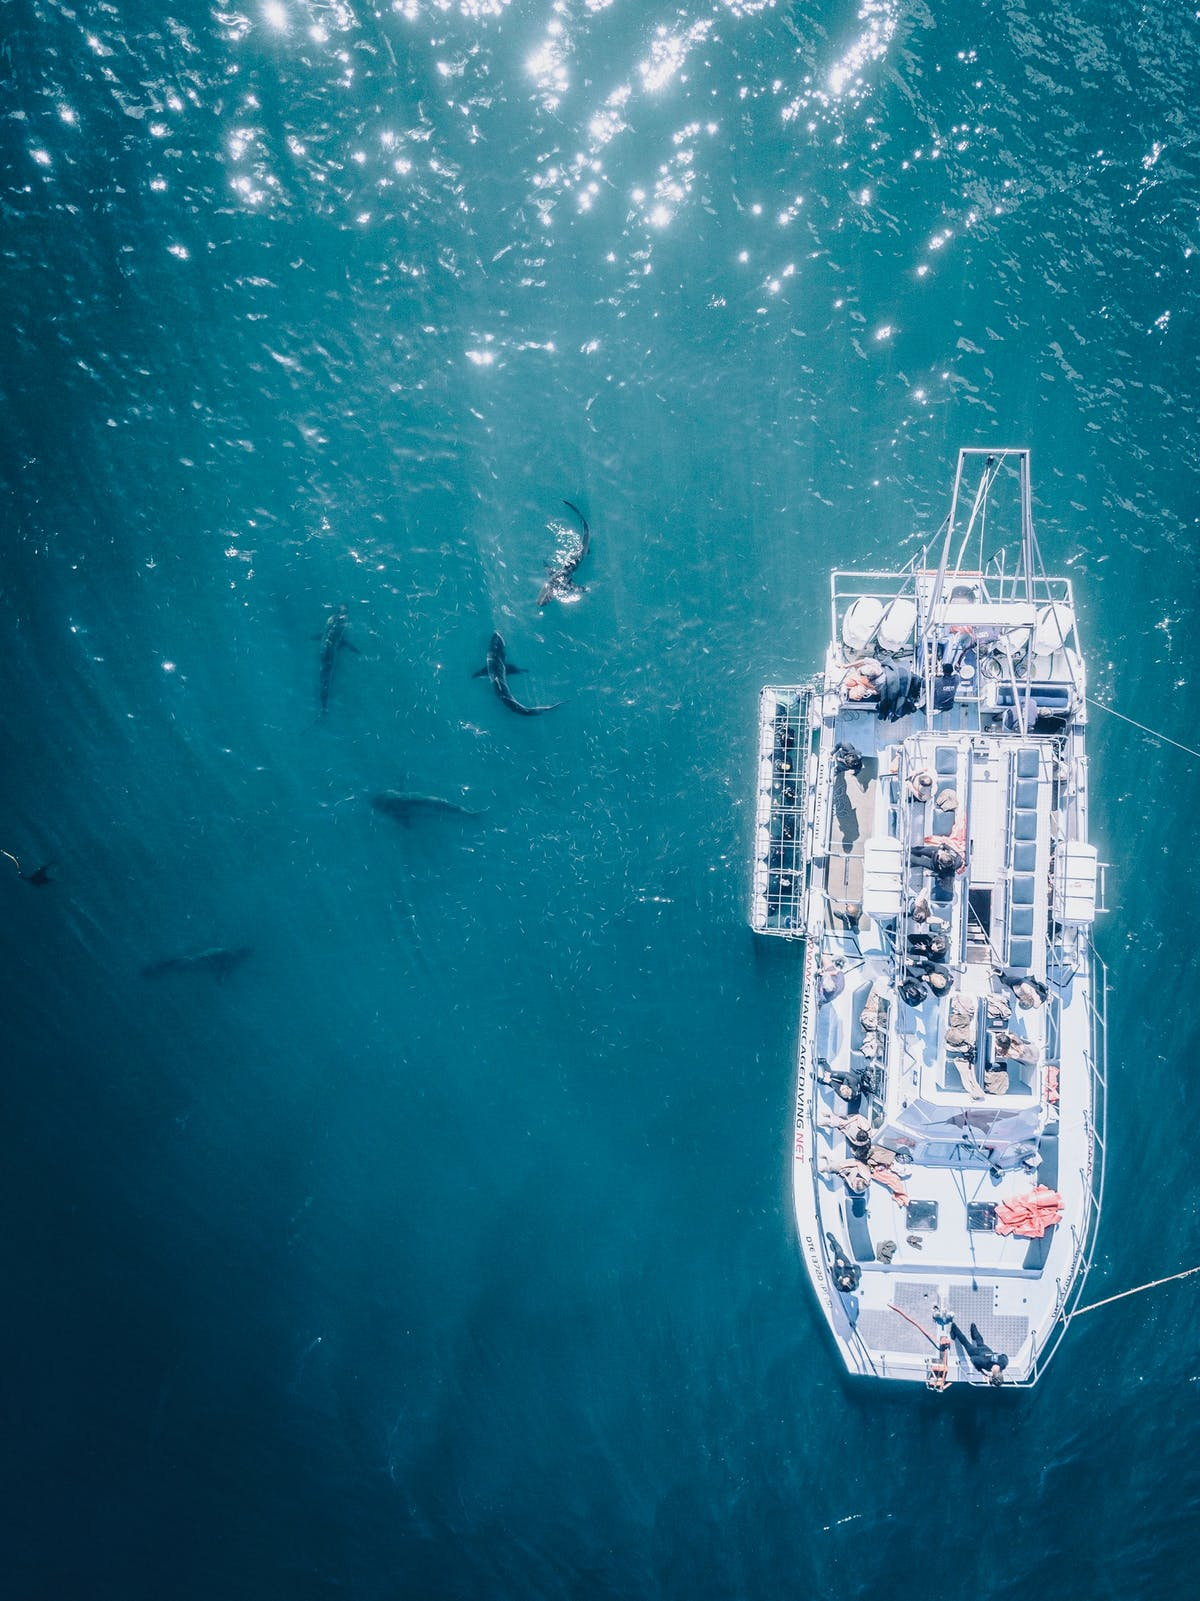 Seen from a drone, a pleasure boat with in the sea, a group of sharks -Photo by Clayton Cardinalli on Unsplash